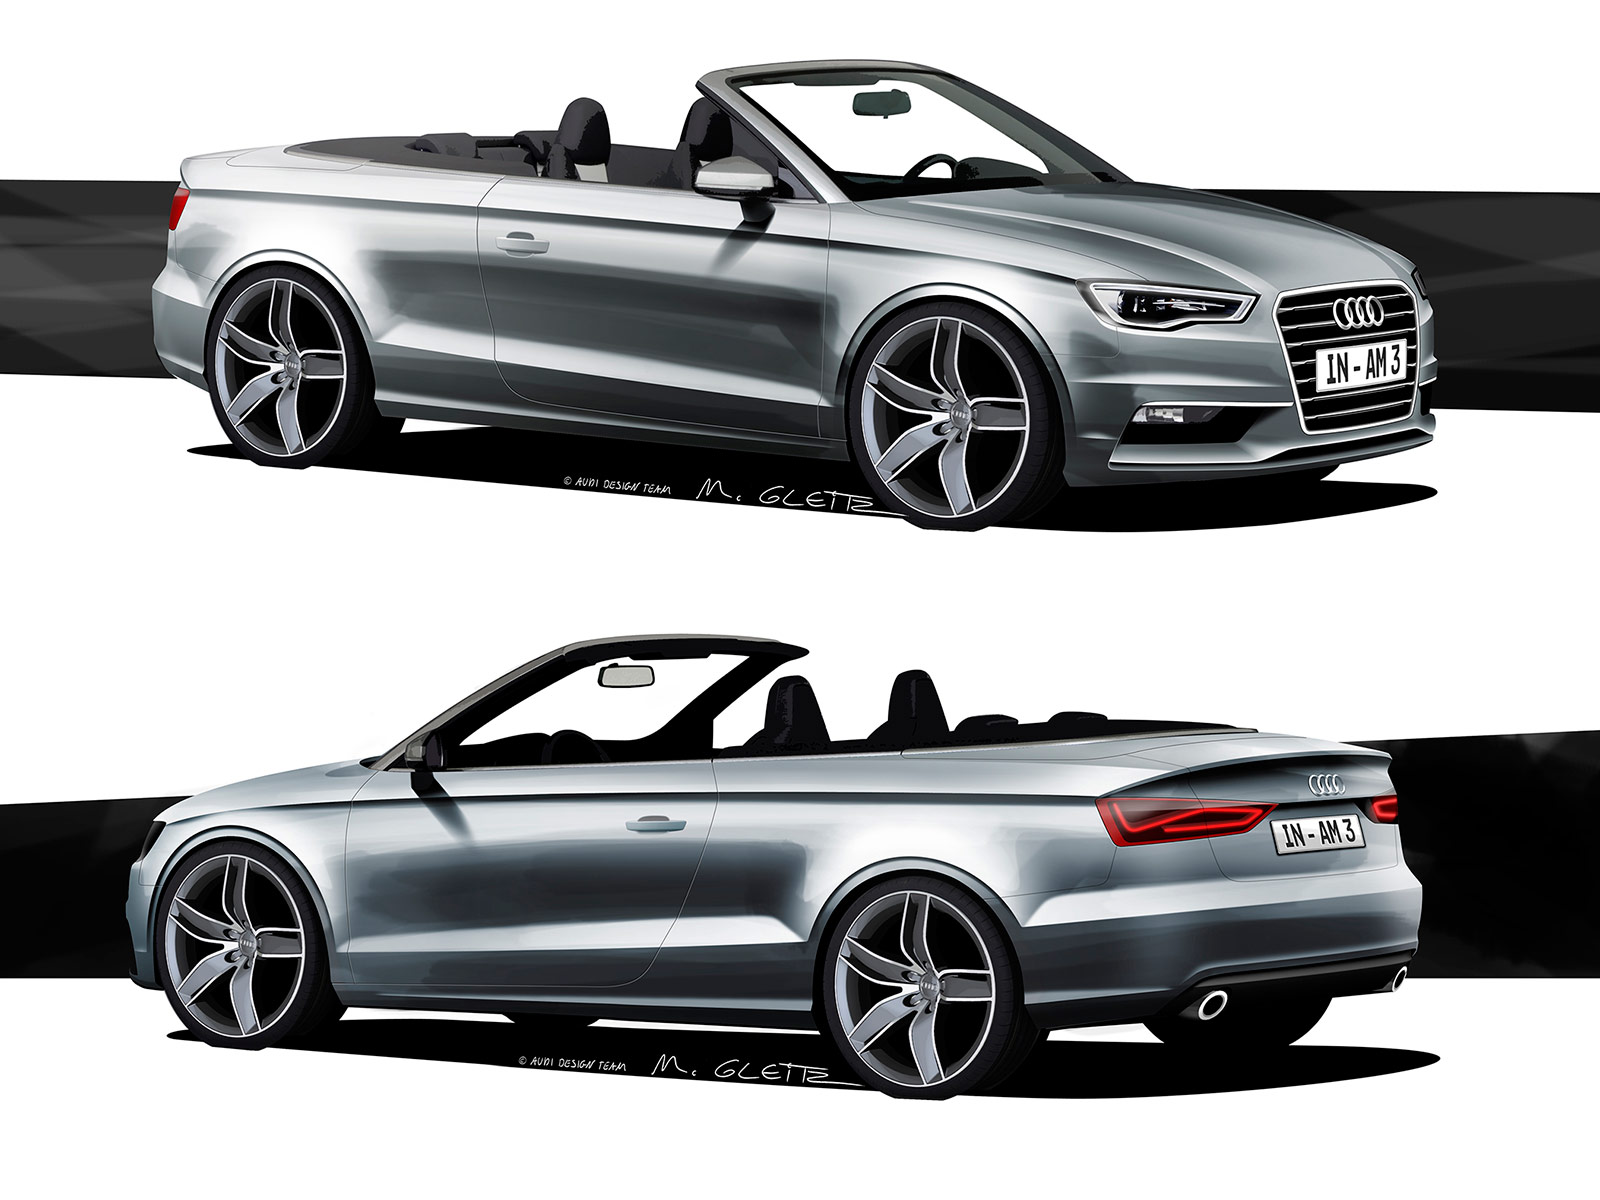 audi a3 cabriolet design sketches car body design. Black Bedroom Furniture Sets. Home Design Ideas